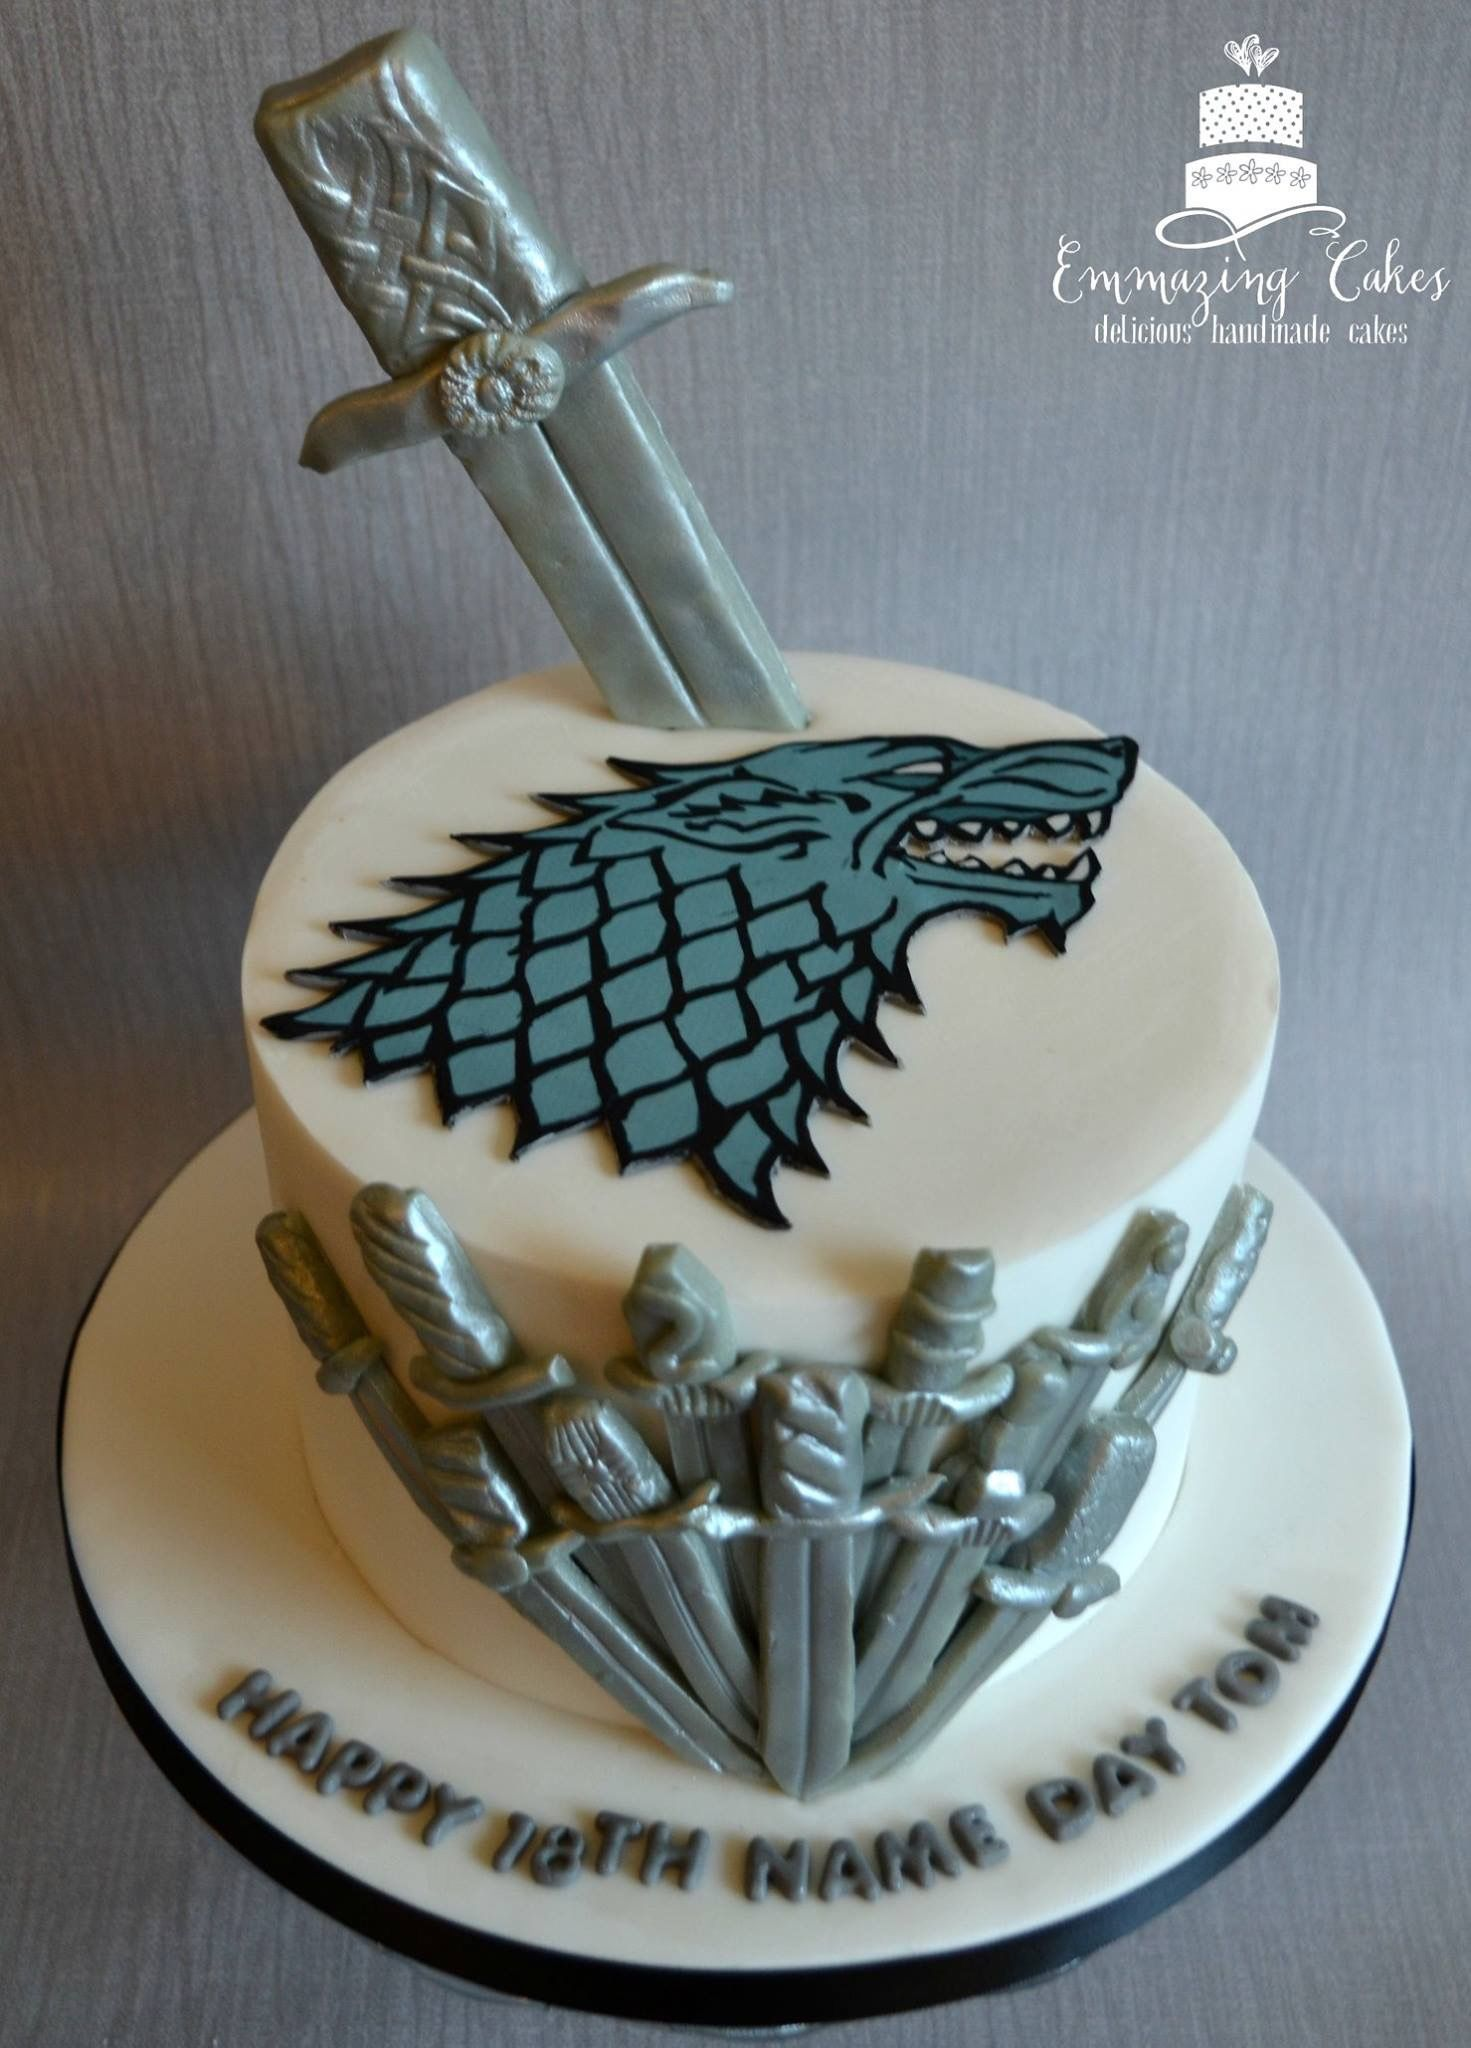 Game of thrones chair cake - My First Game Of Thrones Cake